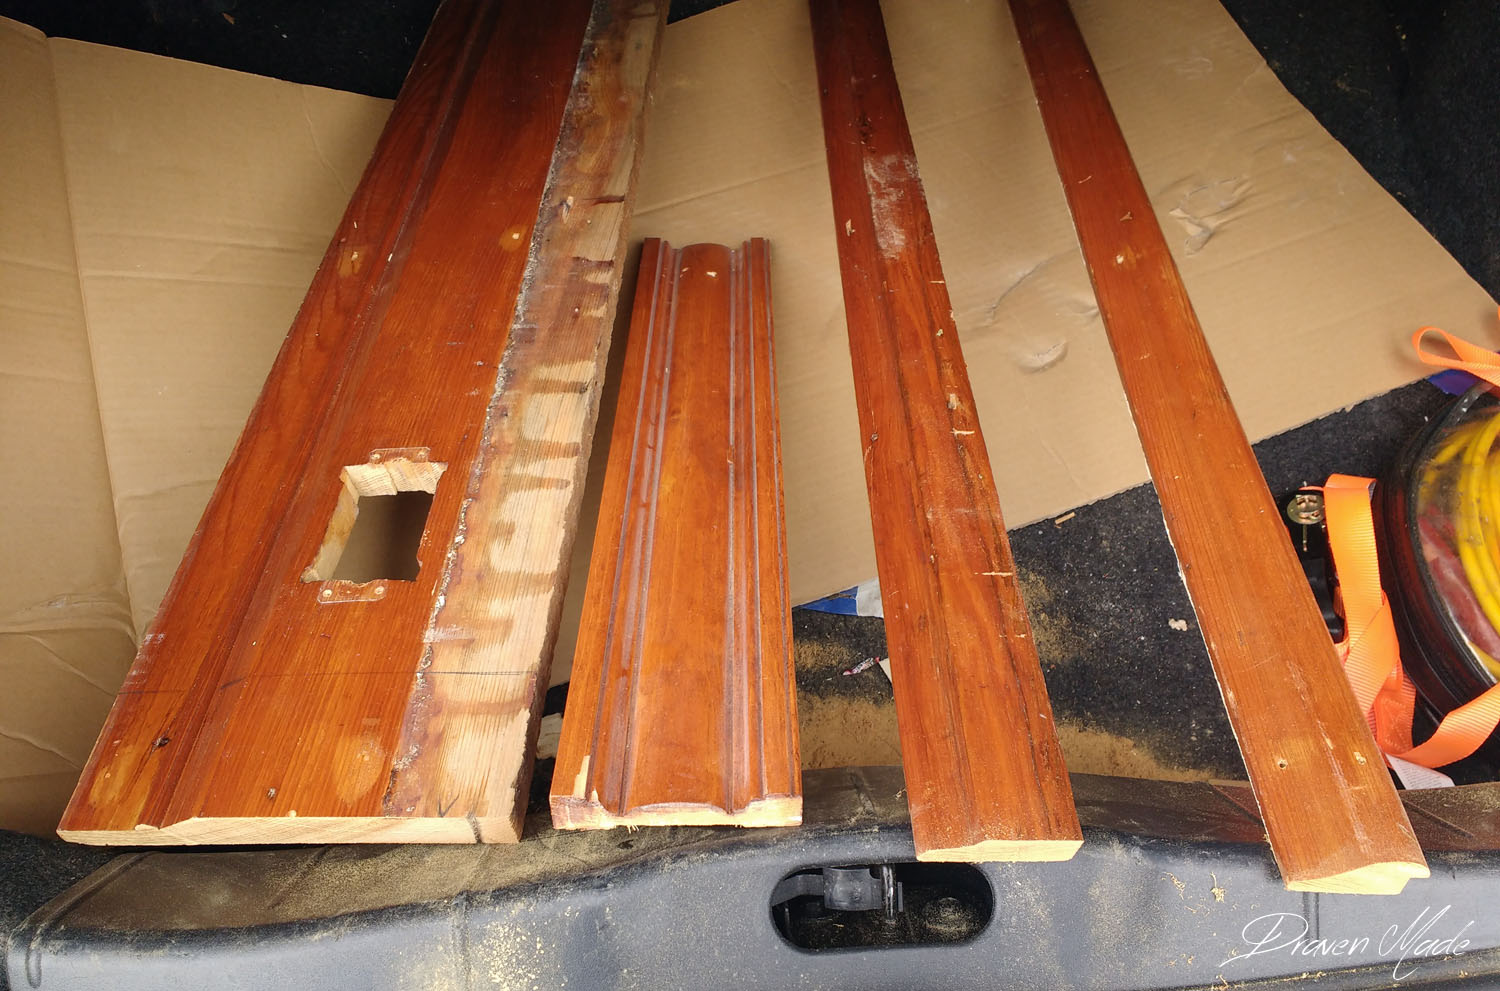 our antique baseboards that needed matching - Master Bedroom Renovation Challenge: [Stage 9] Matching Antique